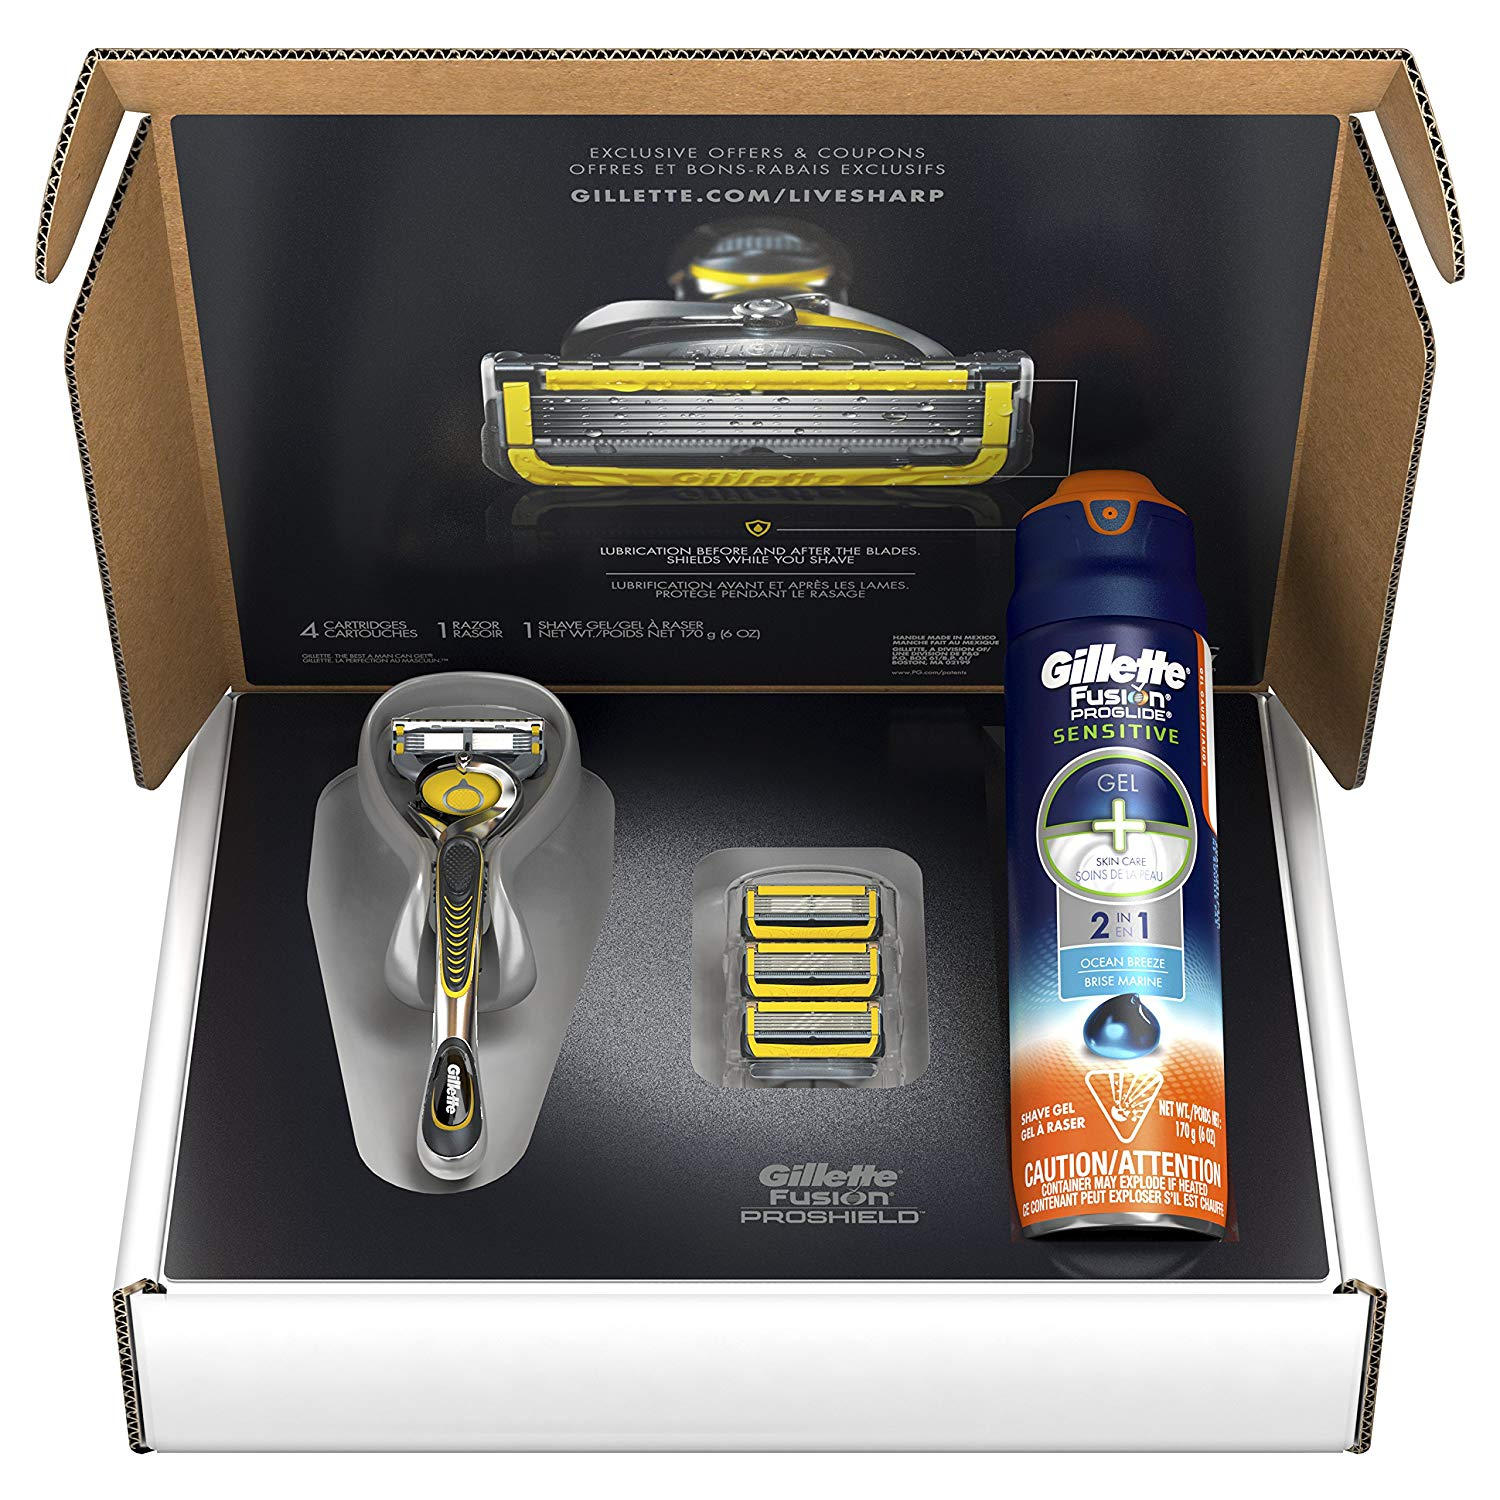 Gillette Fusion ProShield Bundle, Pre-packaged Shaving Essentials